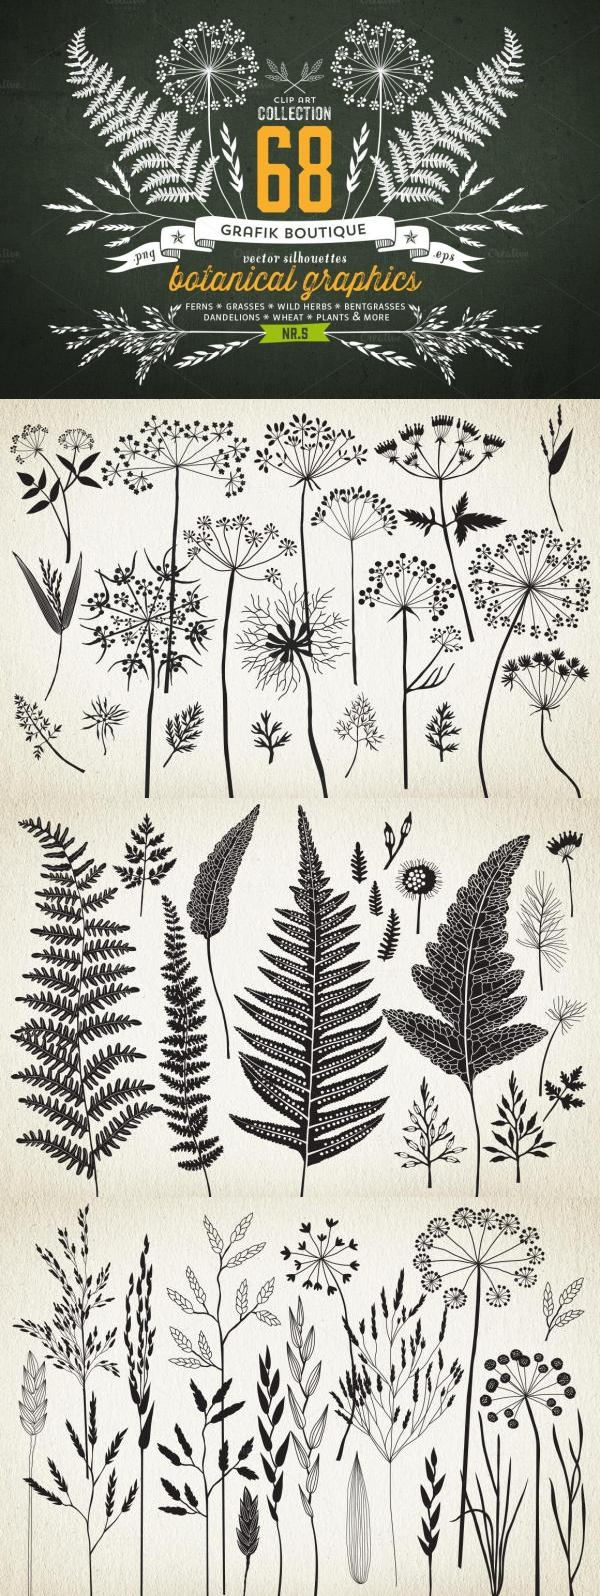 Drawn weed creative And Botanical 68 More planche